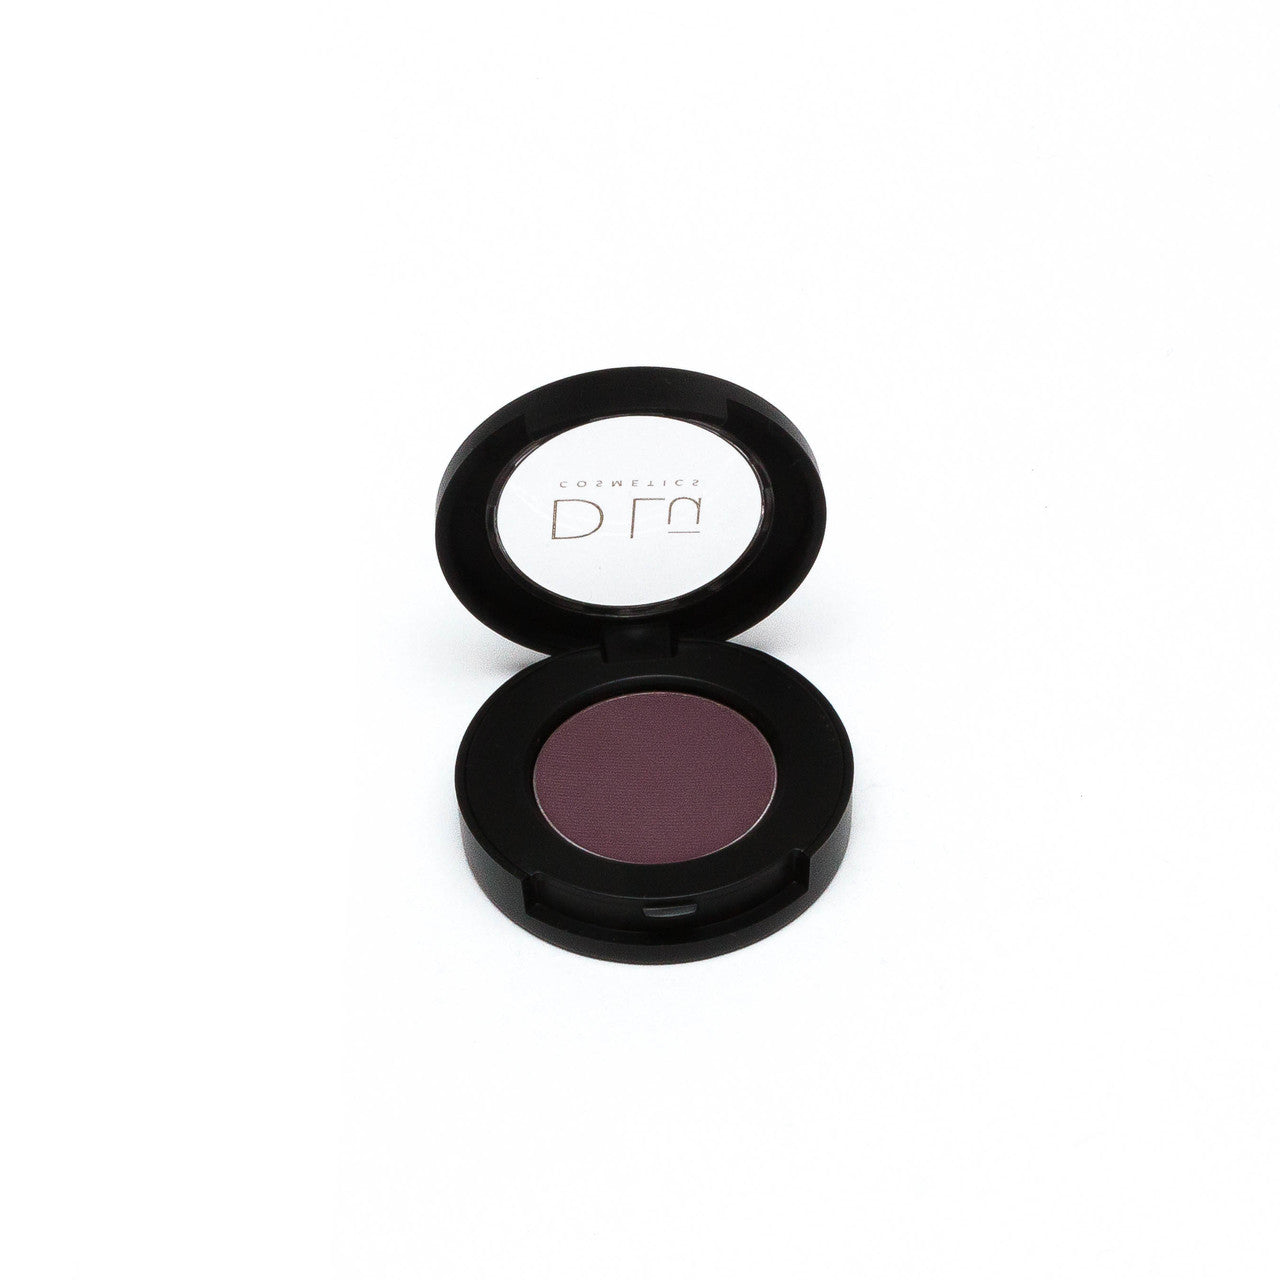 DLu Royale Eyeshadow - Amethyst